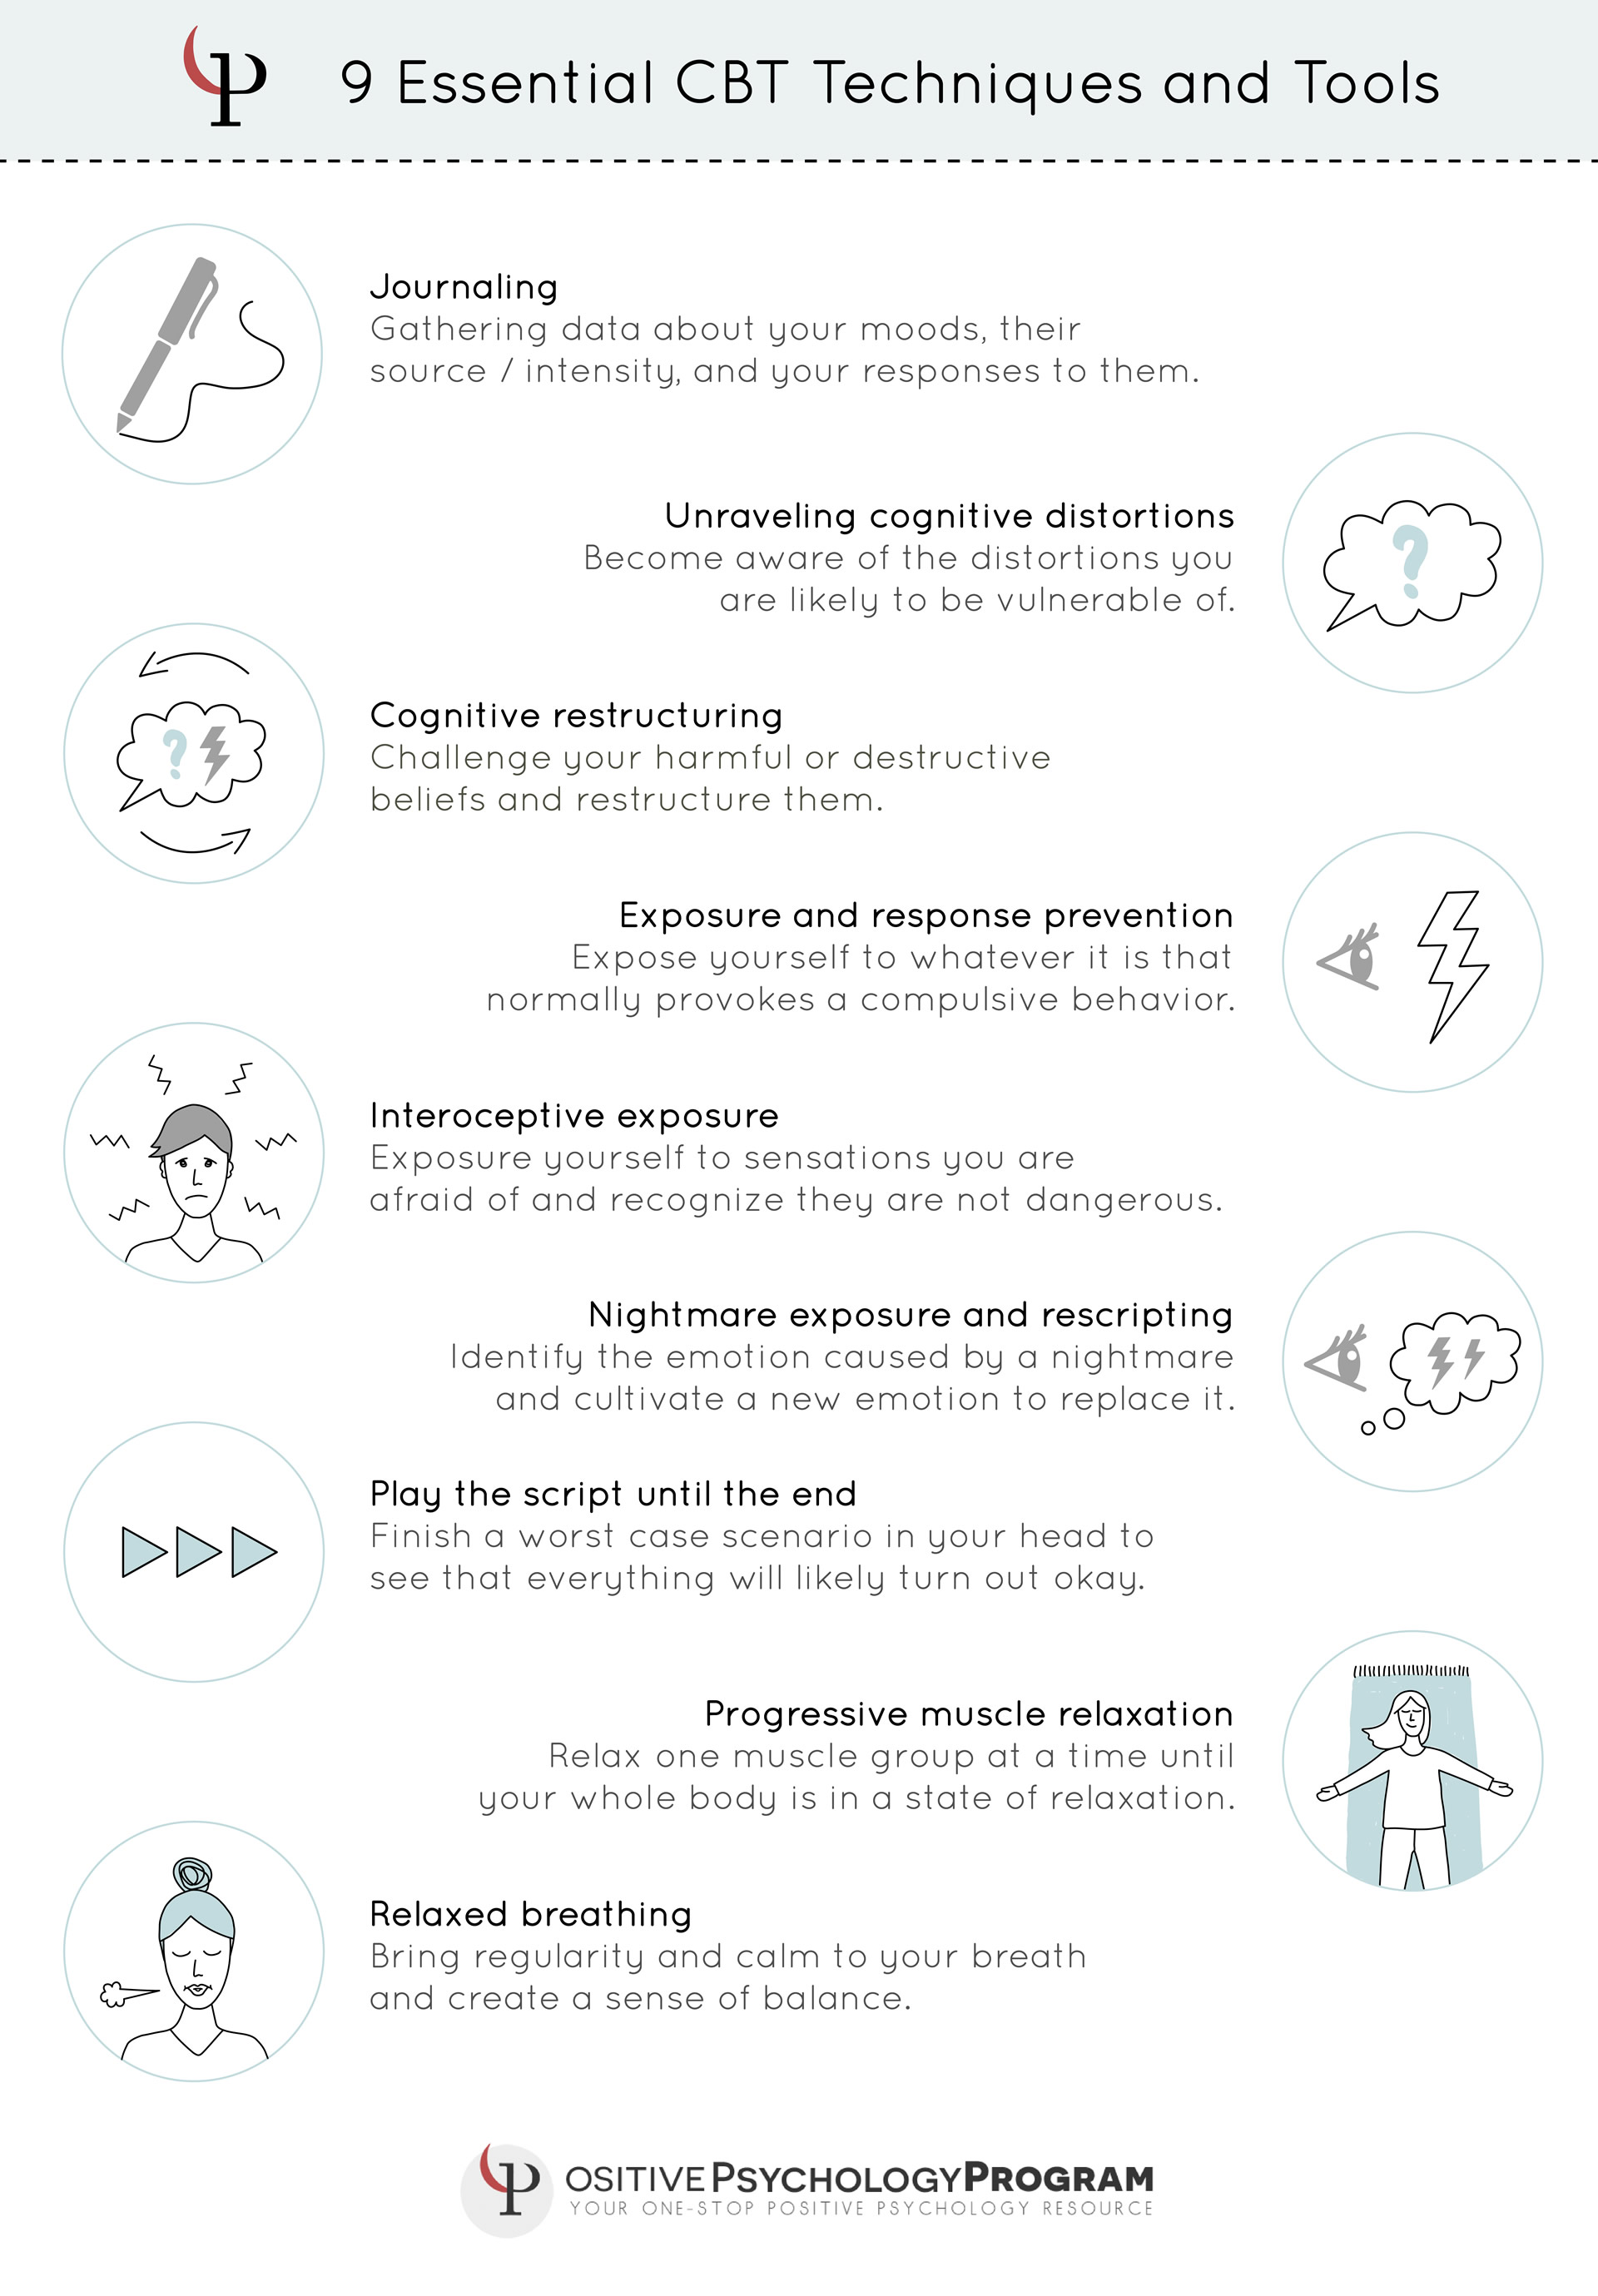 worksheet Worksheets For Group Therapy 25 cbt techniques and worksheets for cognitive behavioral therapy 9 essential tools infographic